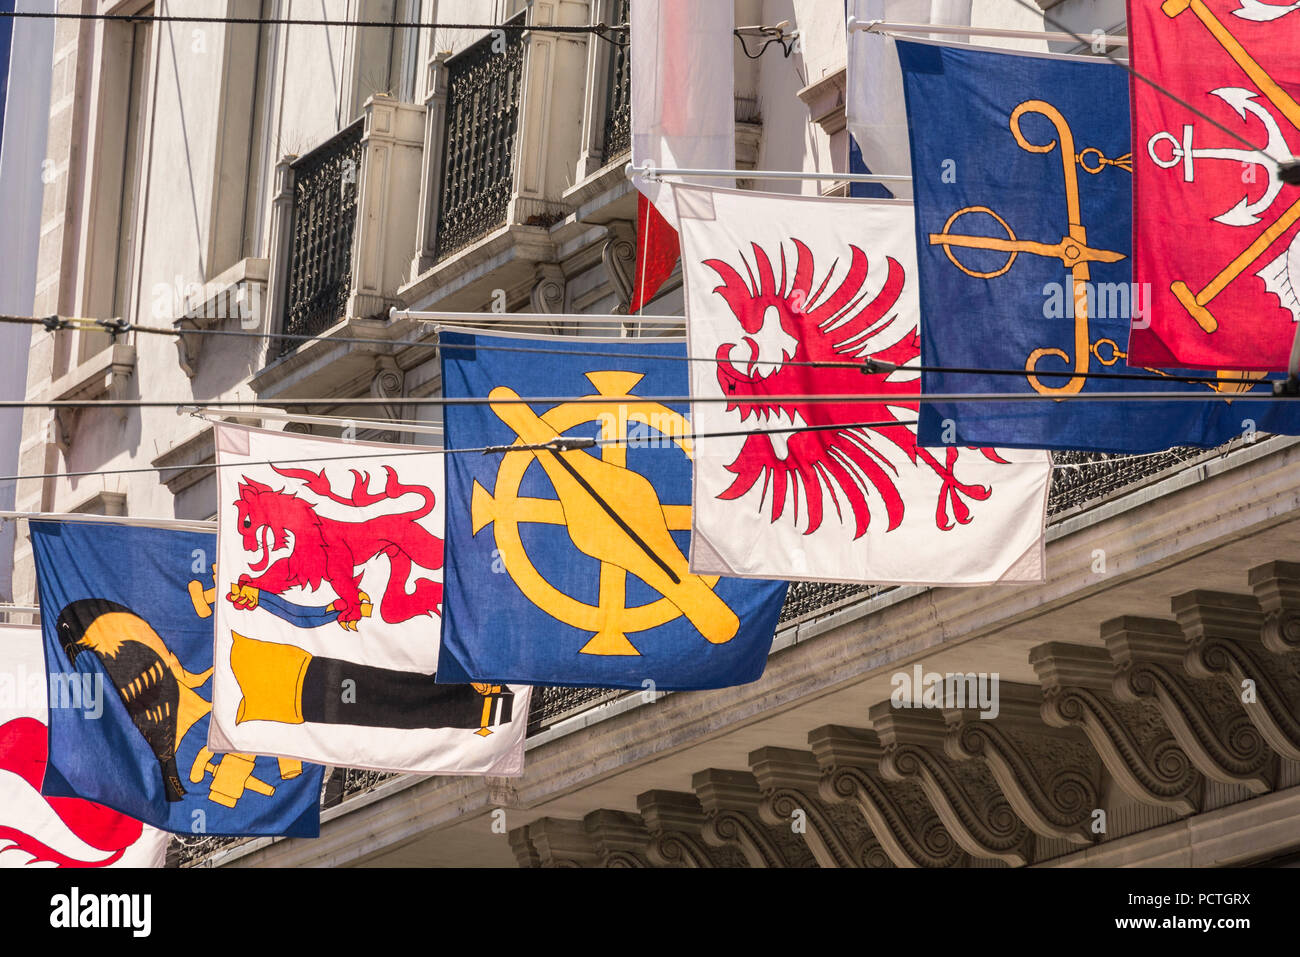 Flags in the Bahnhofstrasse, old town, Zurich, Canton of Zurich, Switzerland - Stock Image